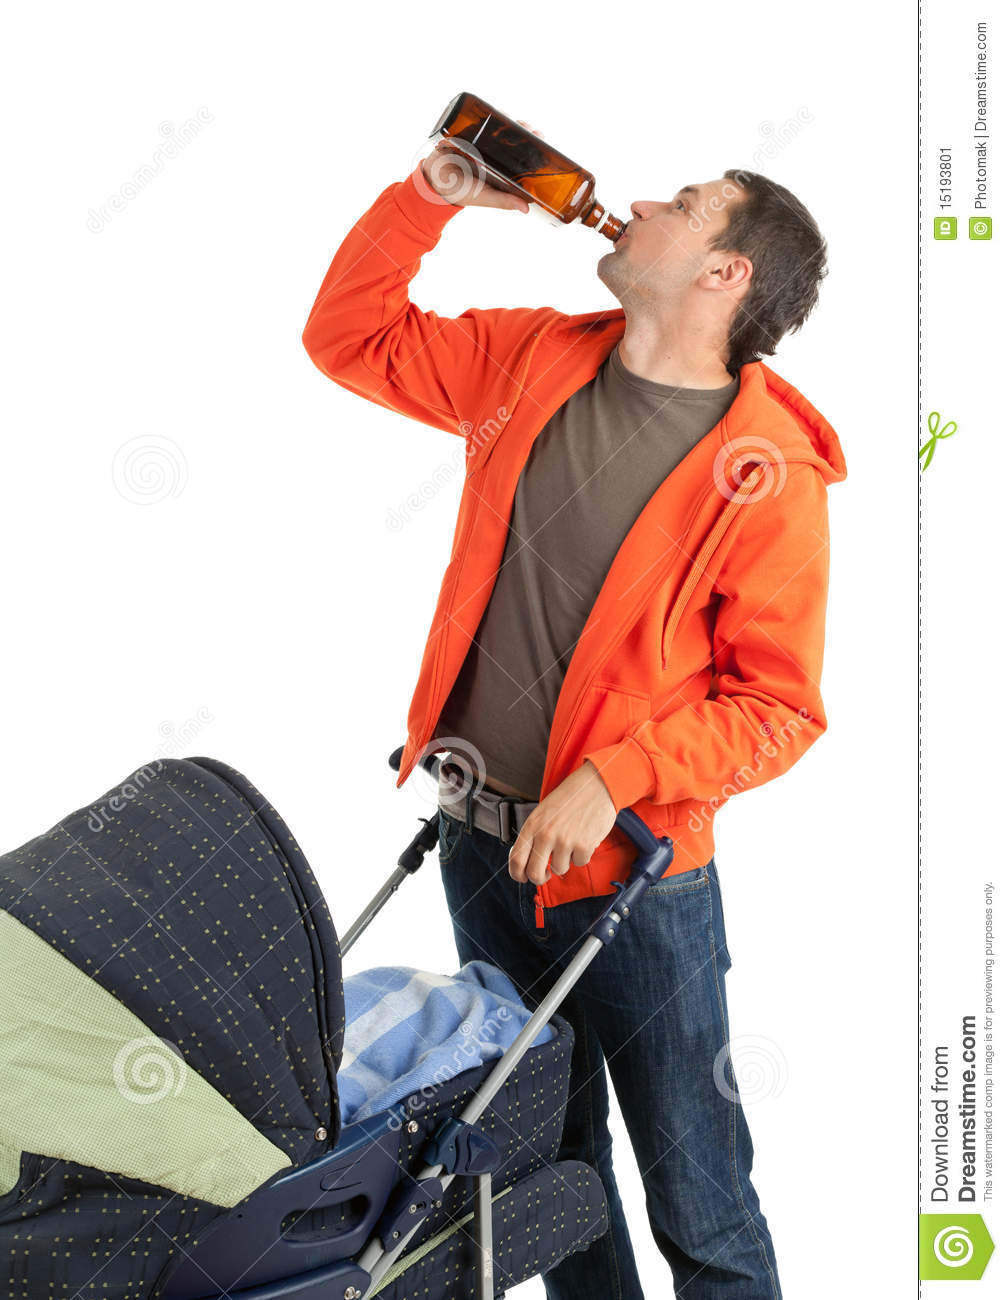 Drinking Alcohol Father With Baby Buggy Stock Image - Image: 15193801